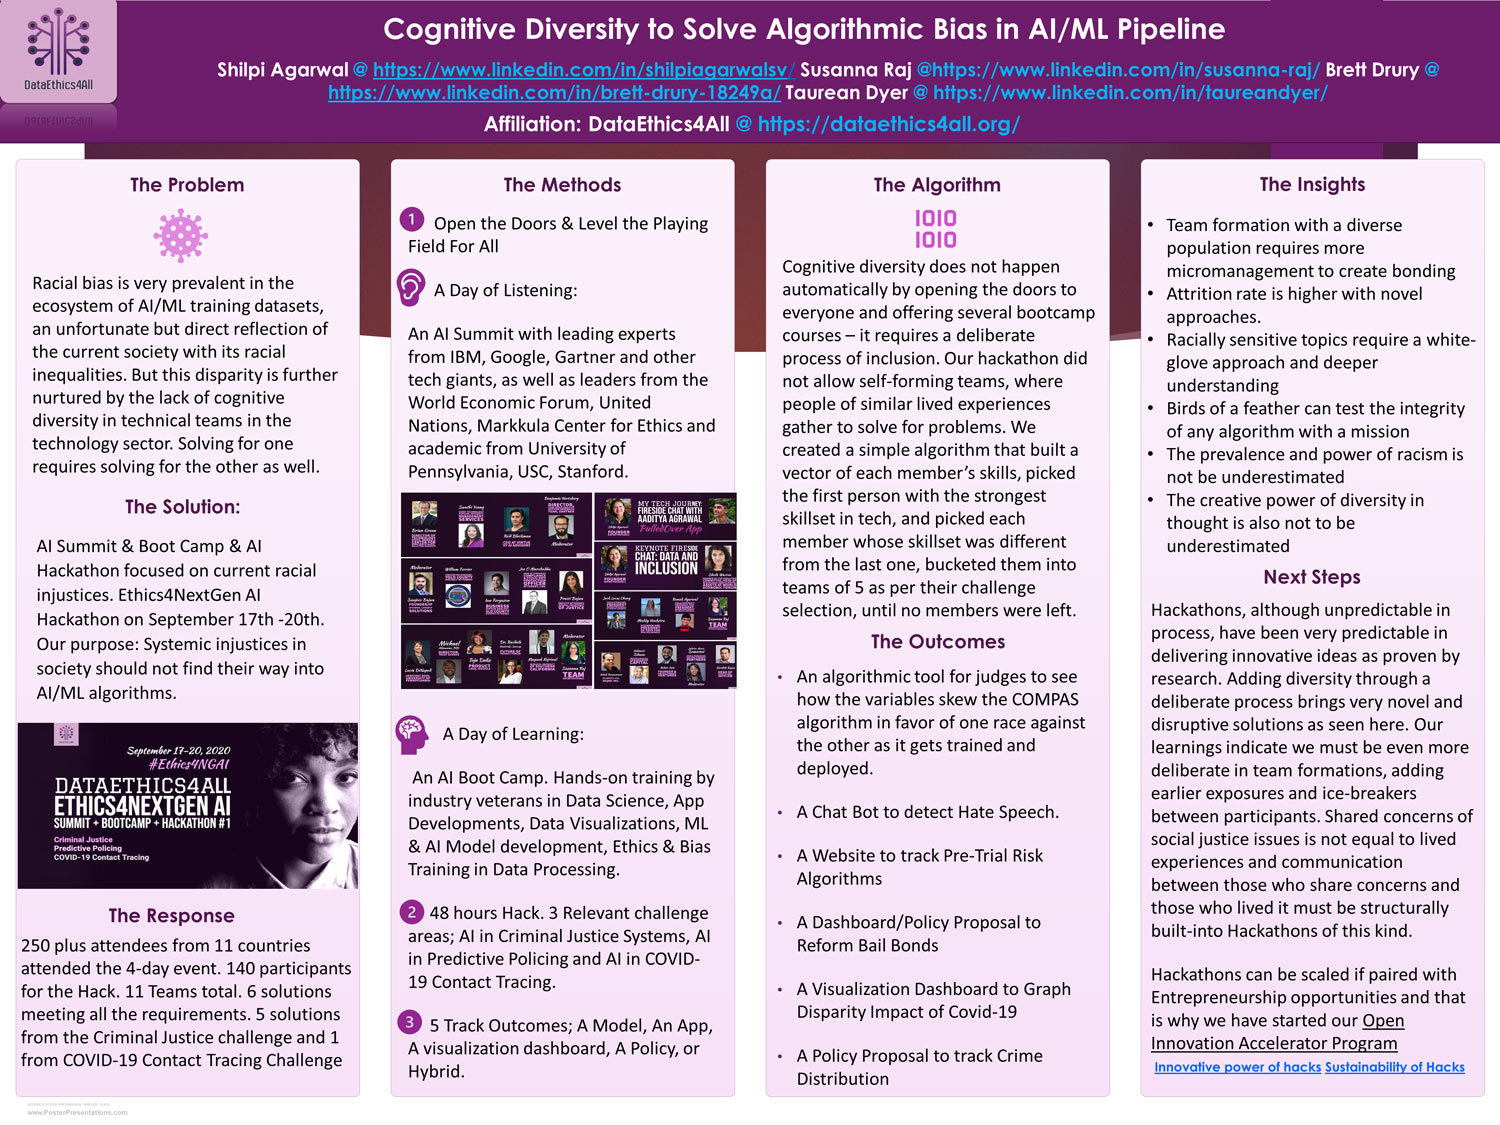 Cognitive-Diversity-to-solve-Algorithmic-Bias-in-AIML-Pipeline-WiML-Poster-Presentation-DataEthics4All